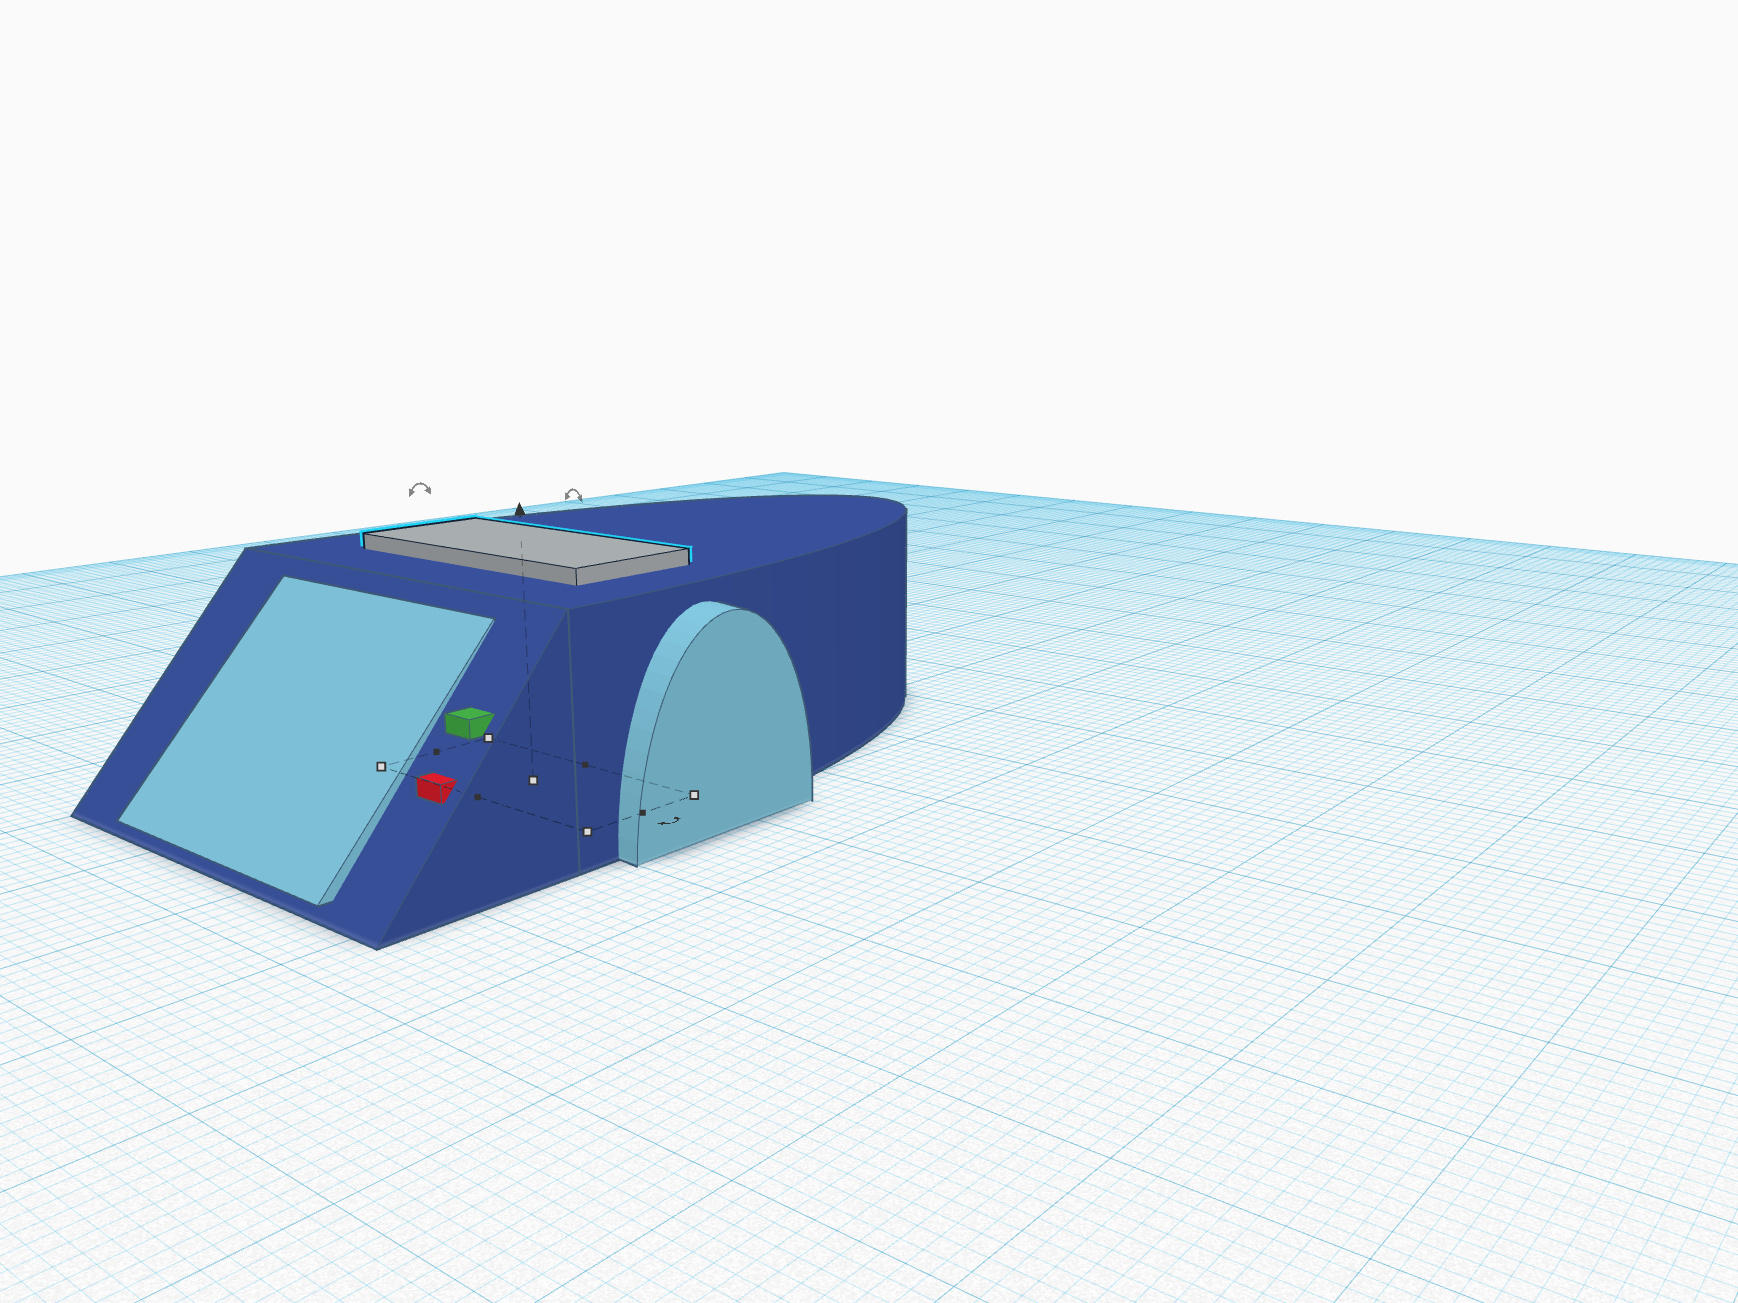 TinkerCAD78910.png